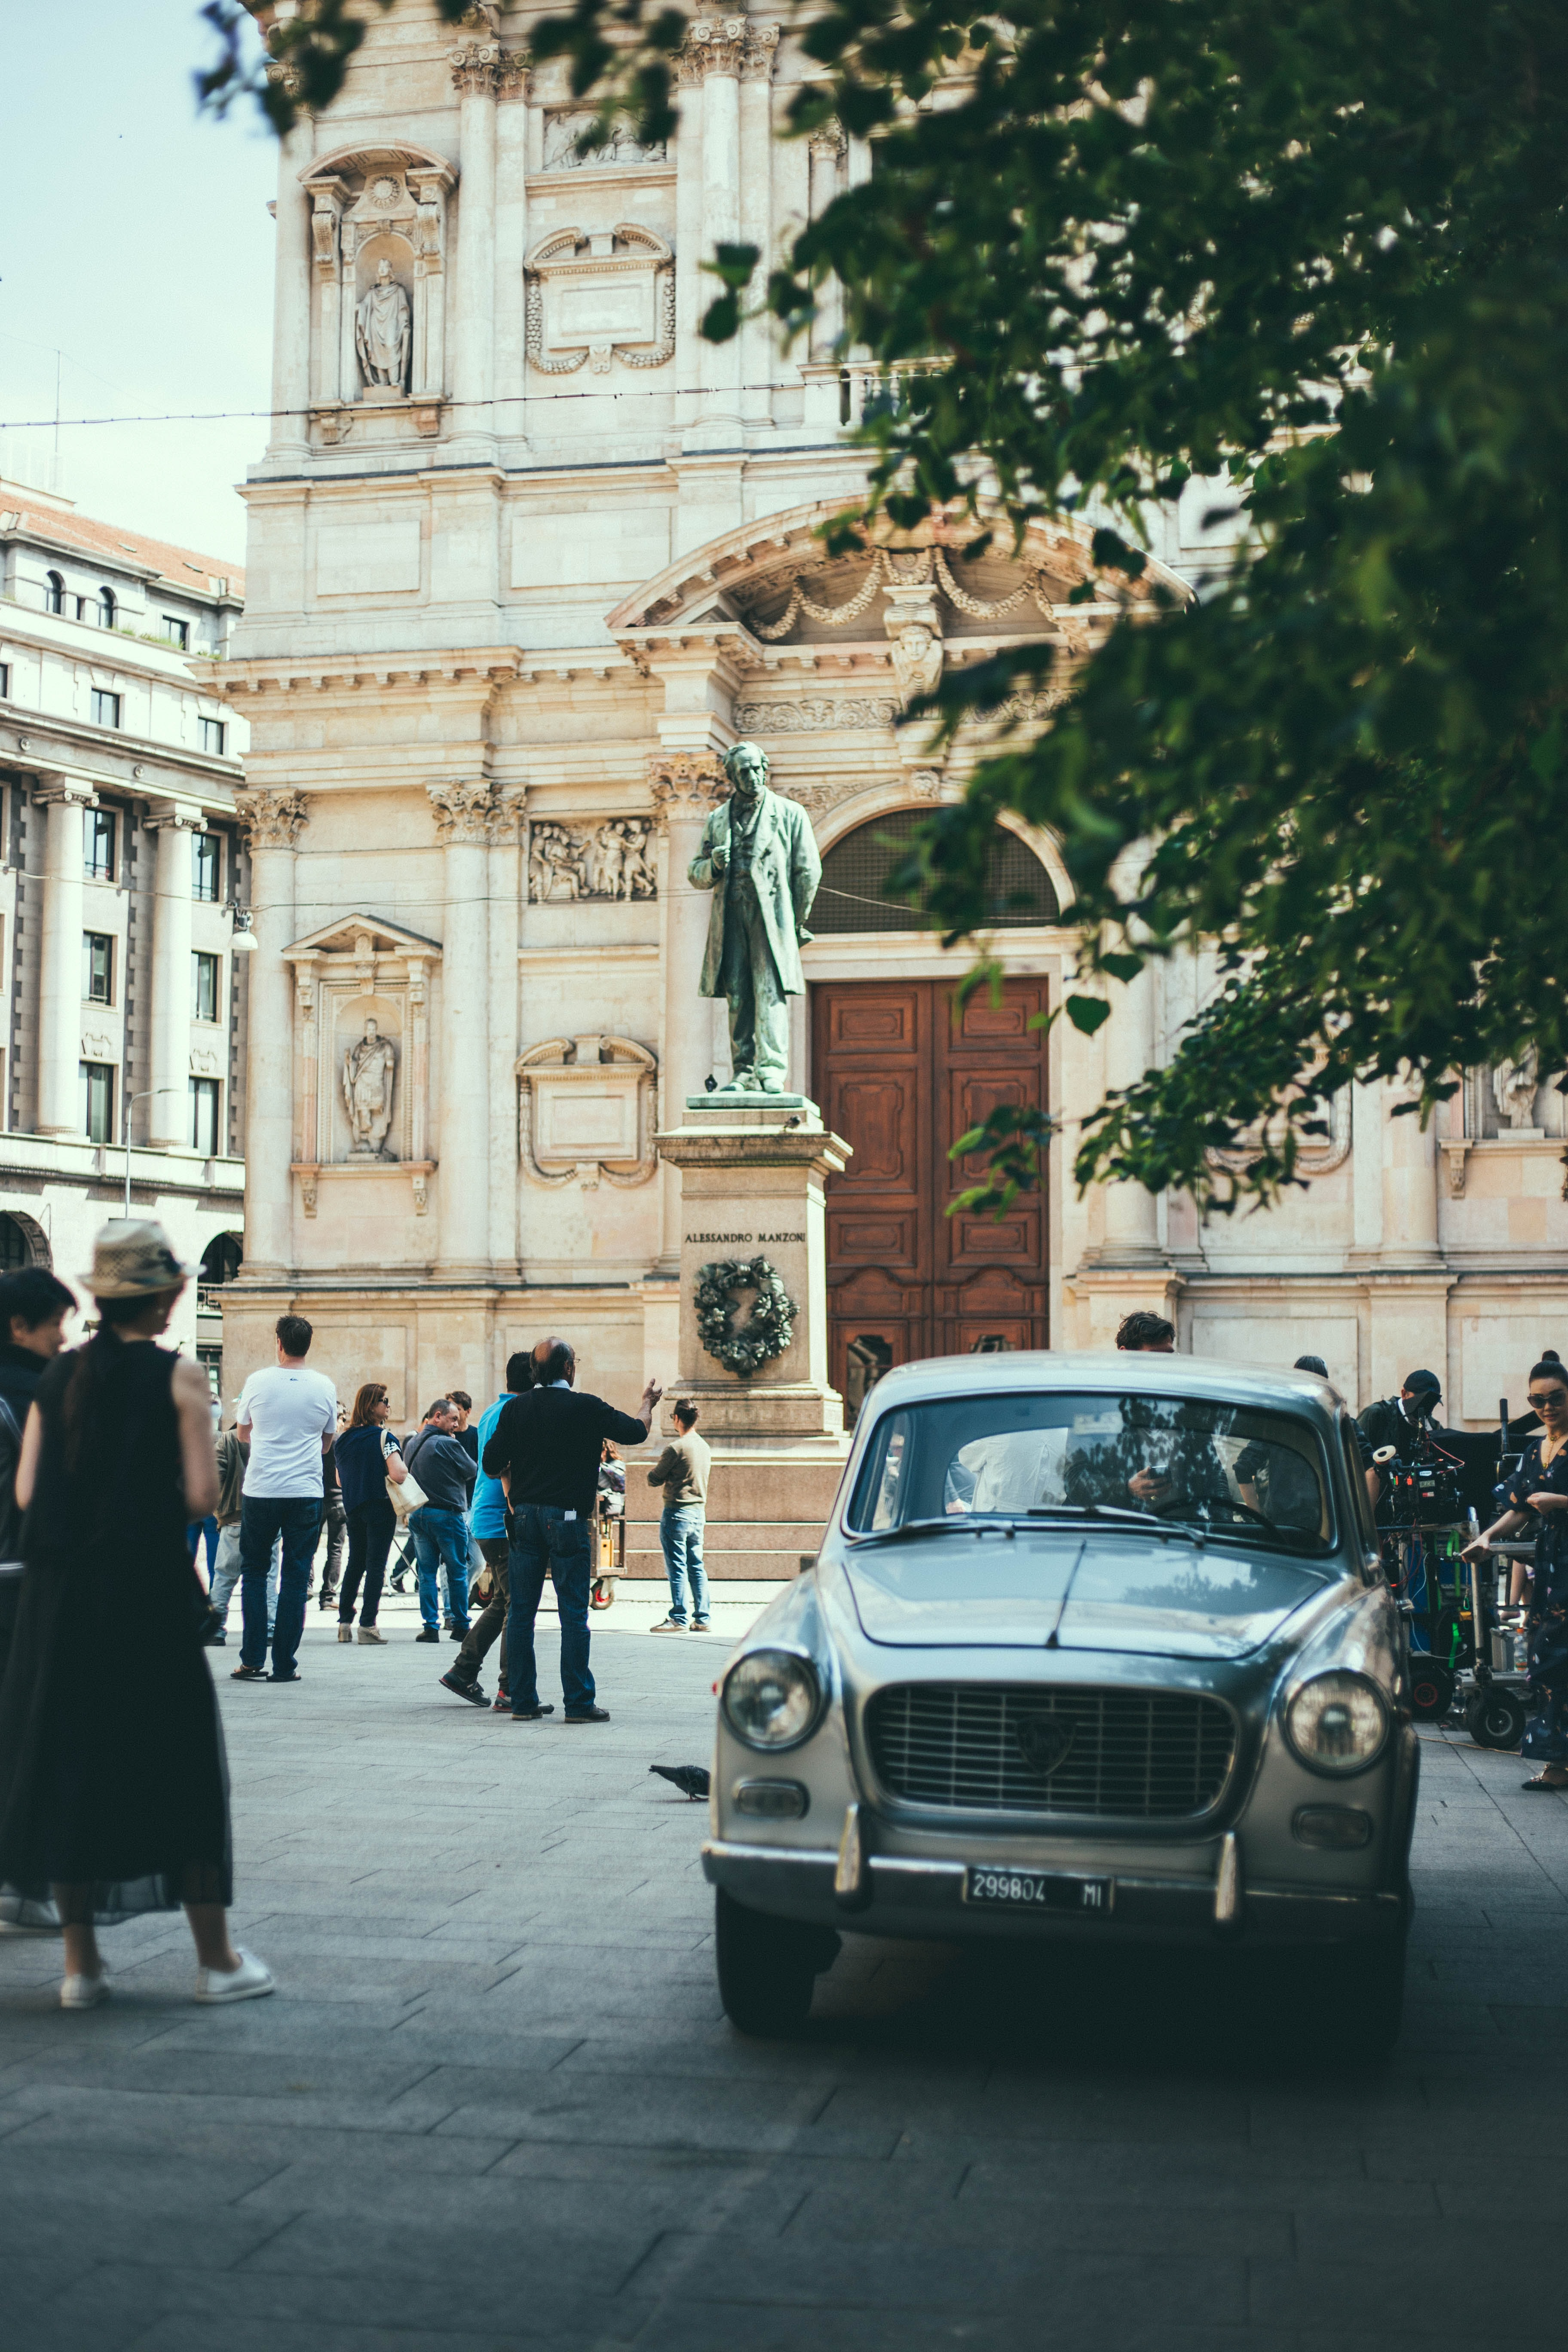 vehicle surrounded by people near standing man statue during daytime